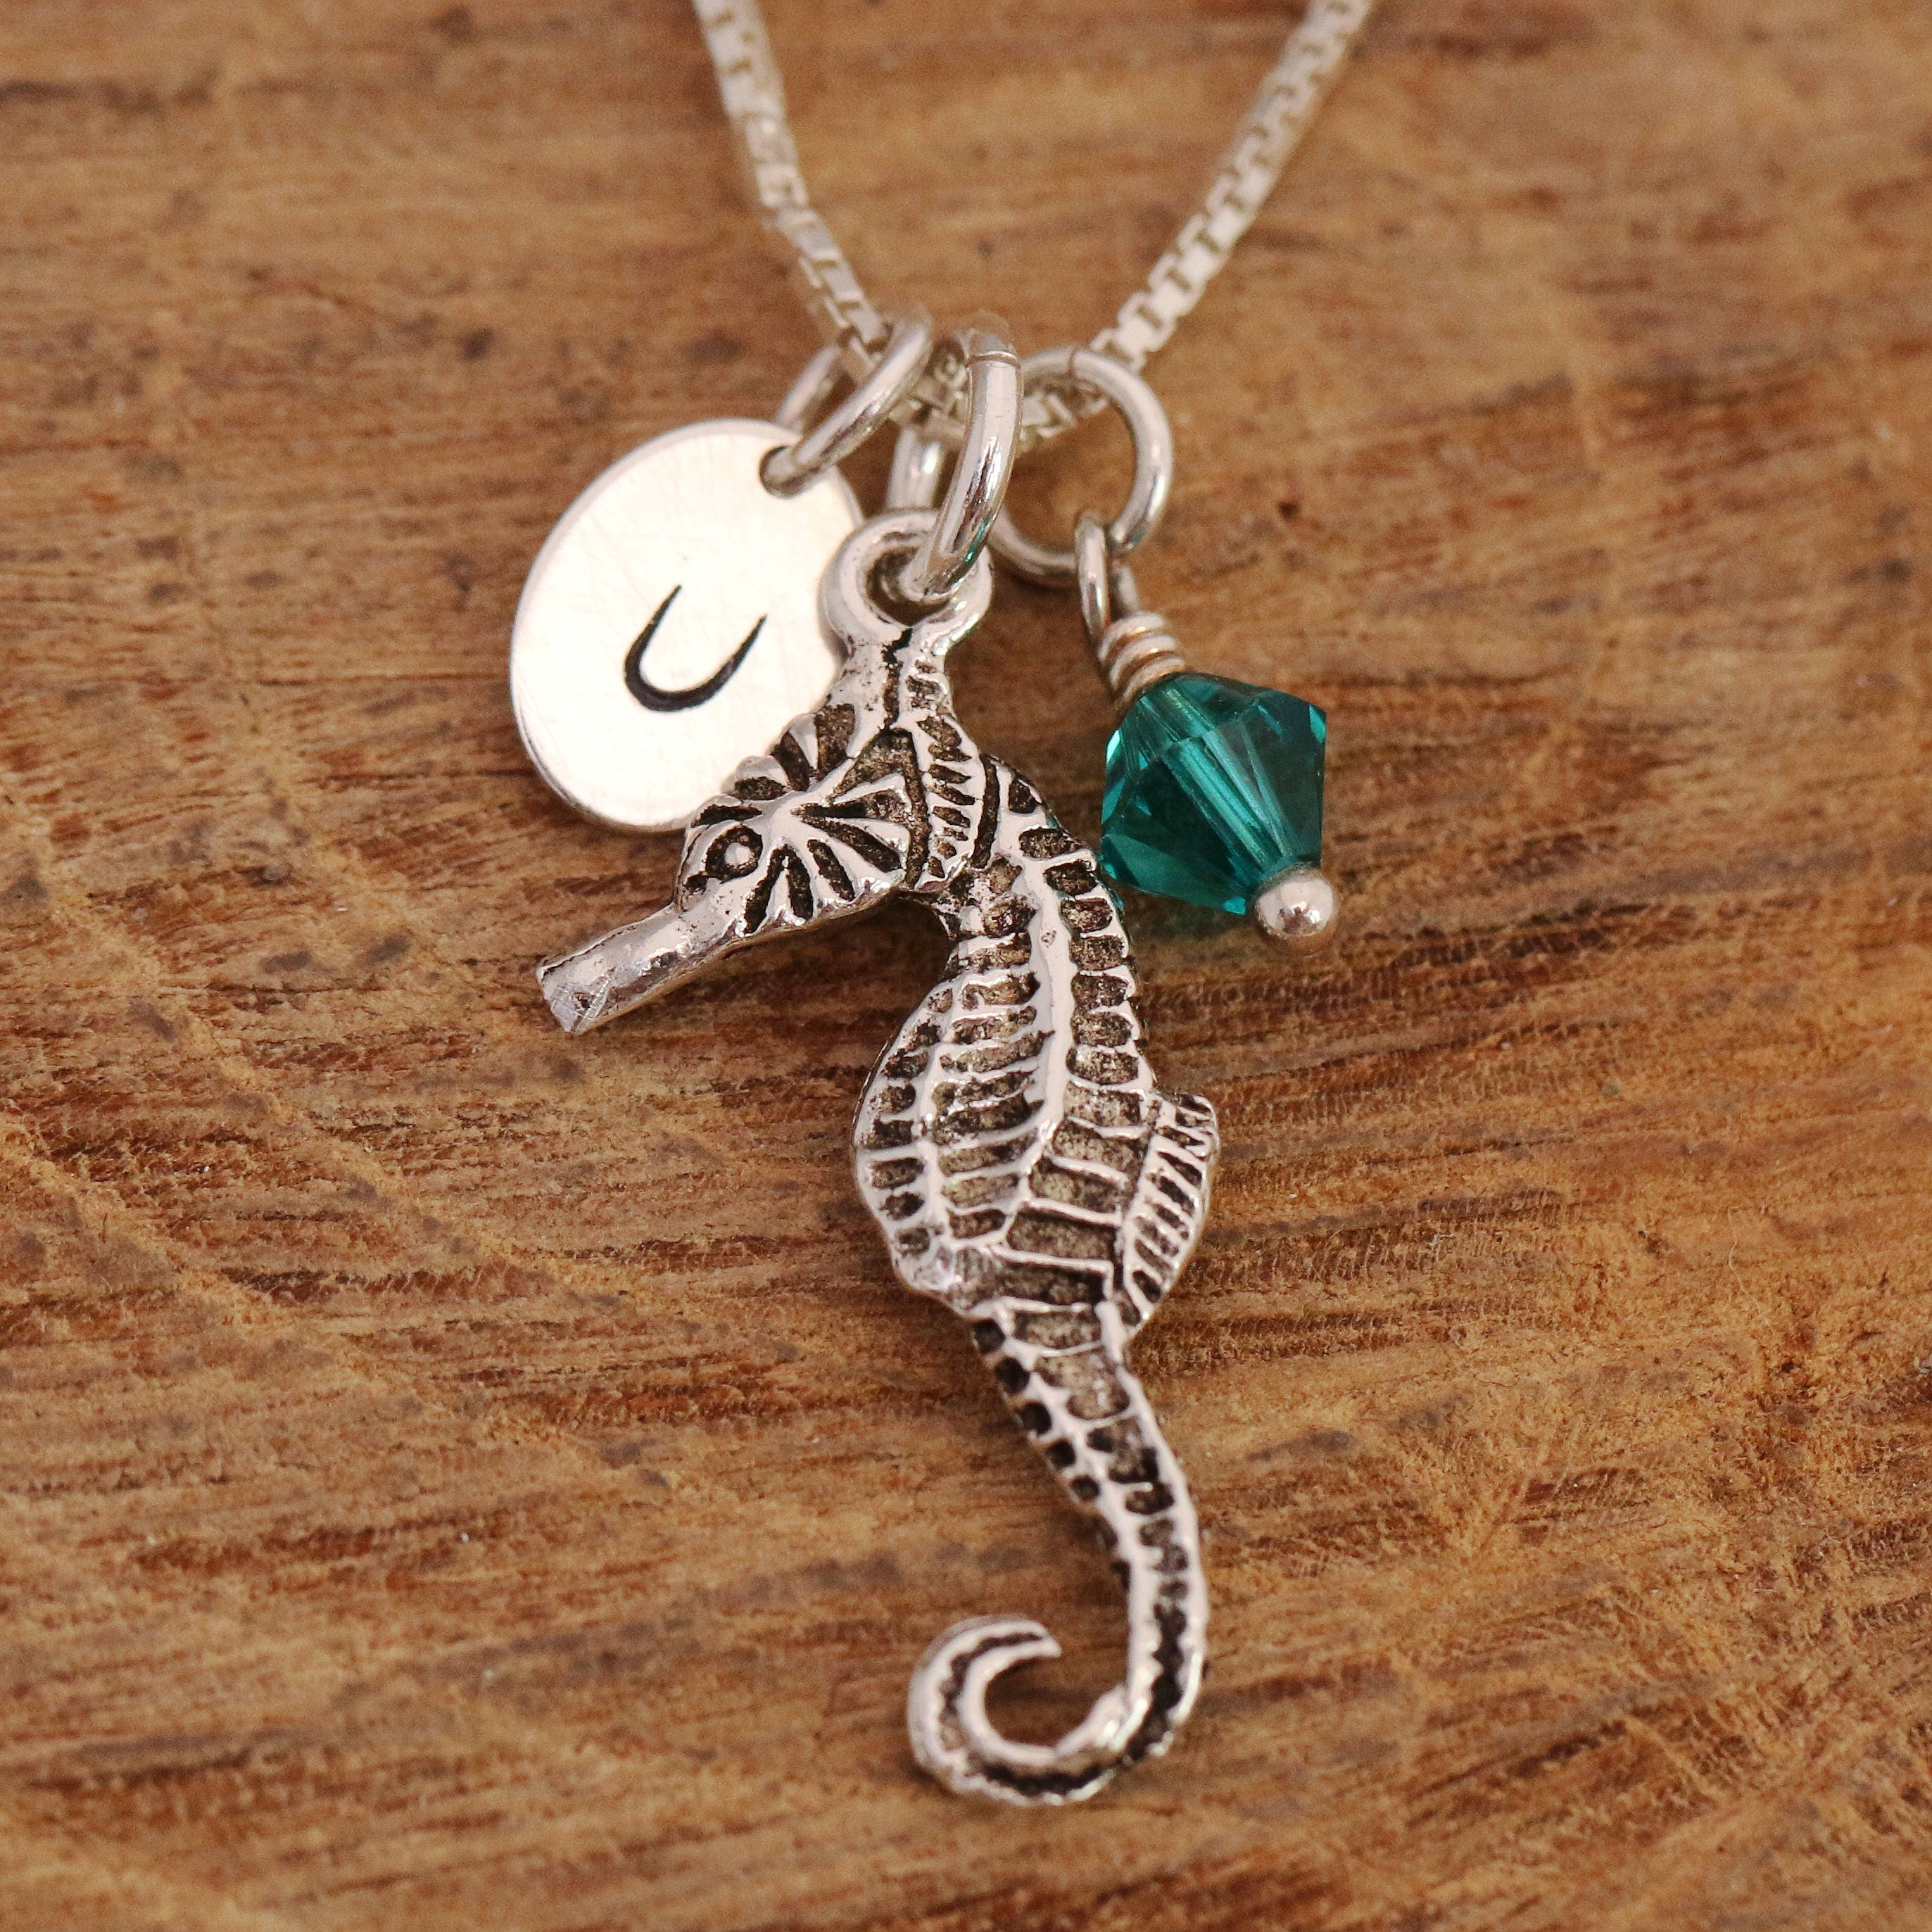 tashi norbu jewelry seahorse products necklace